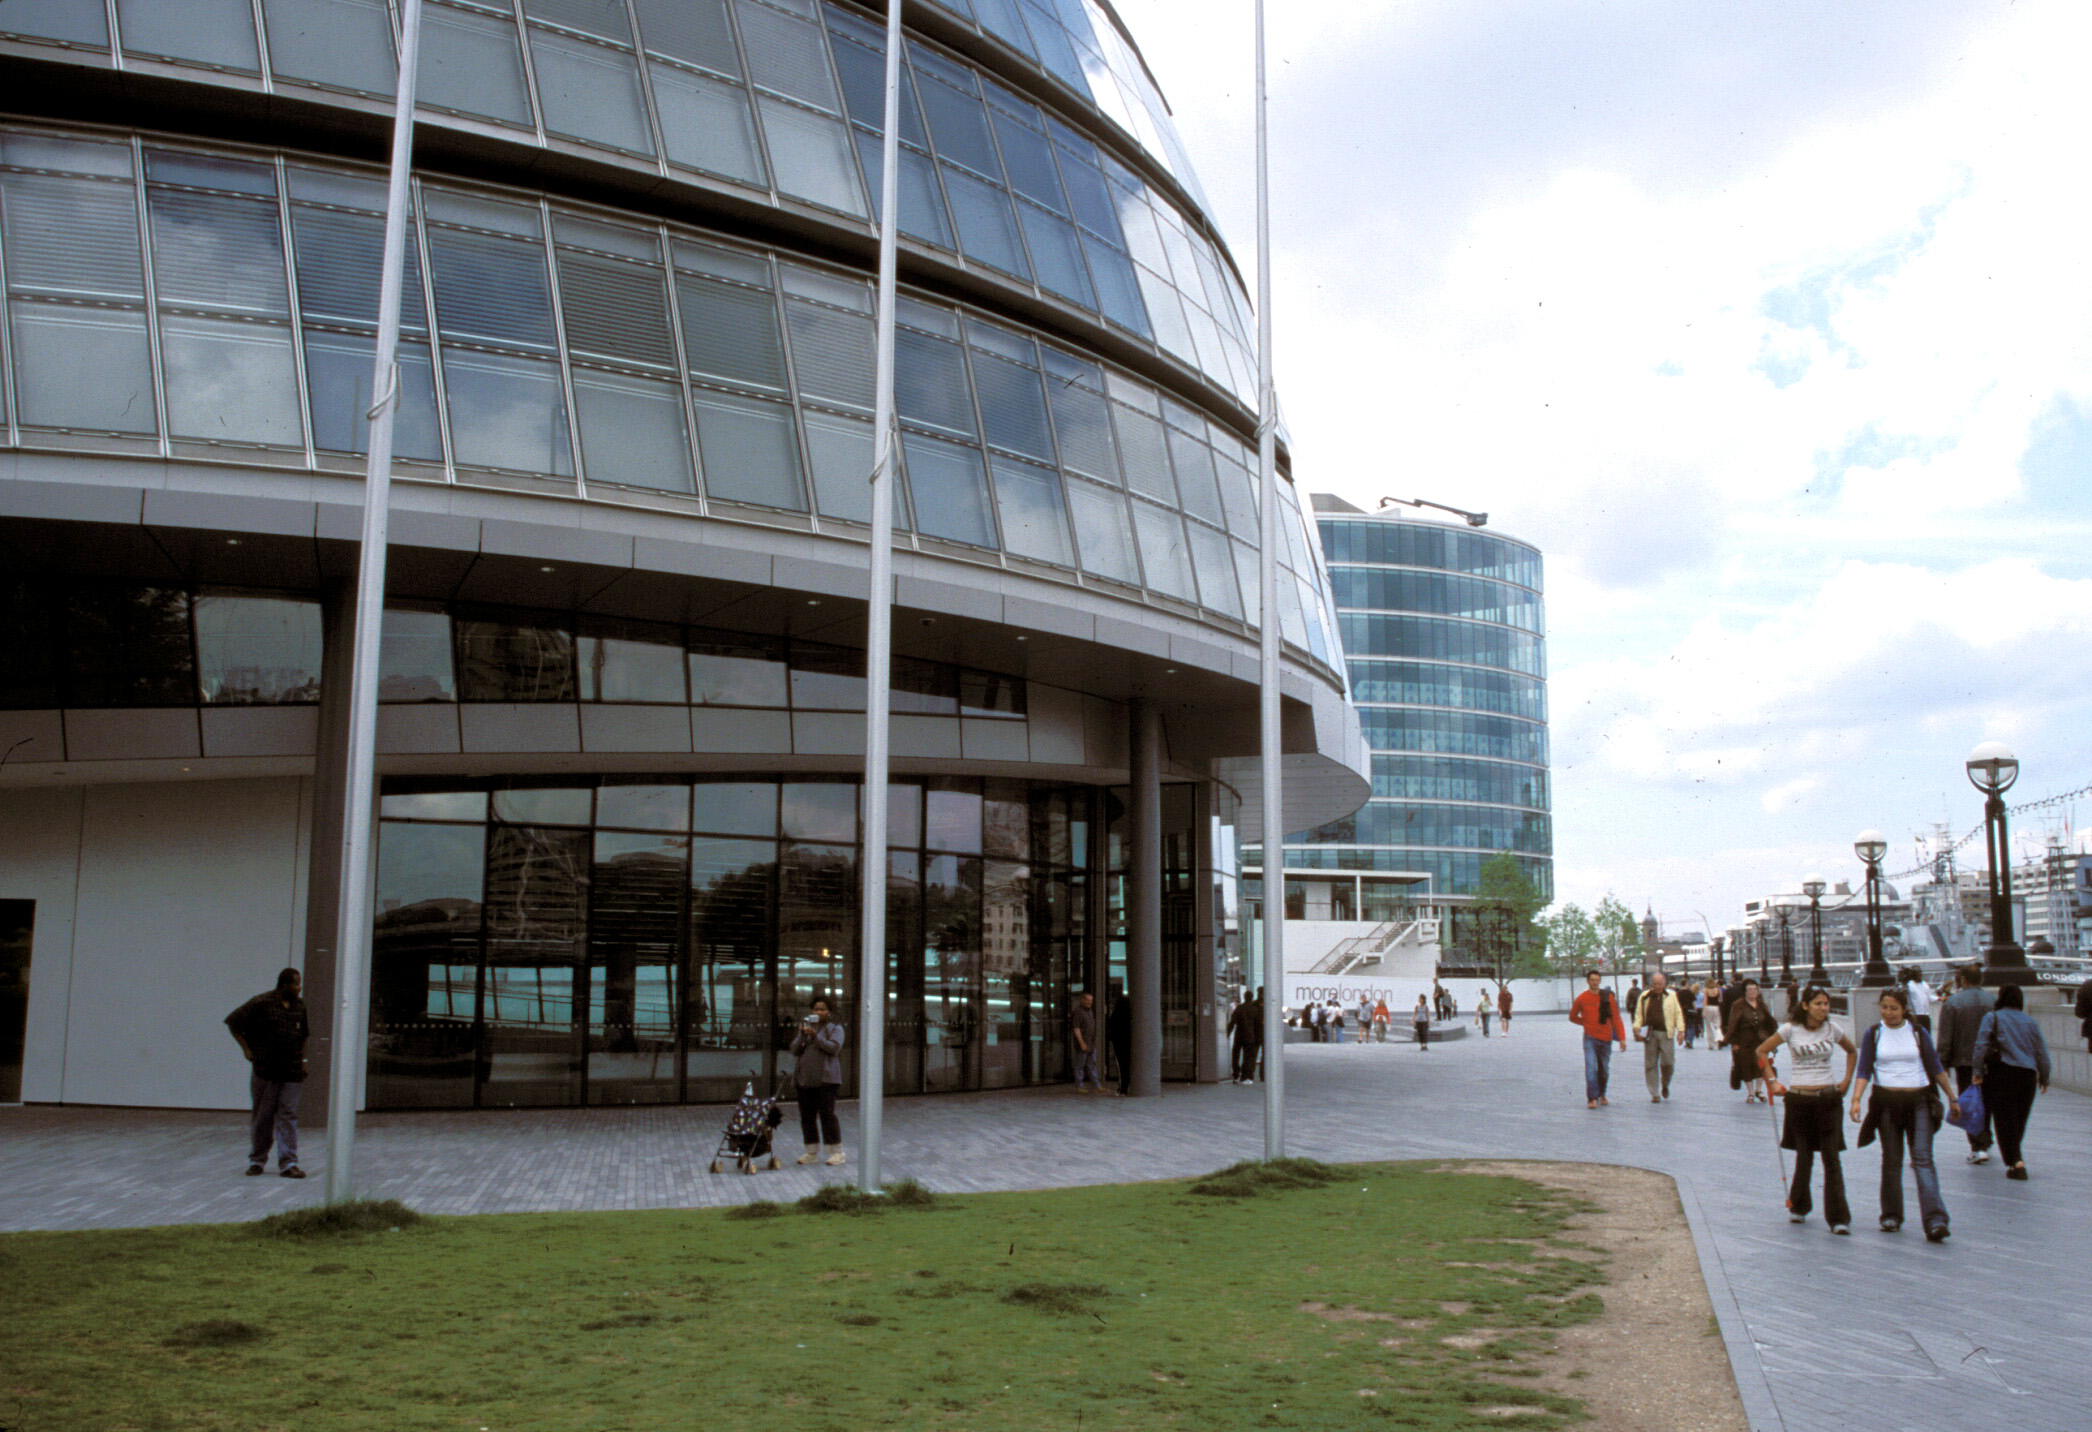 GLA Building (City Hall) and Plaza